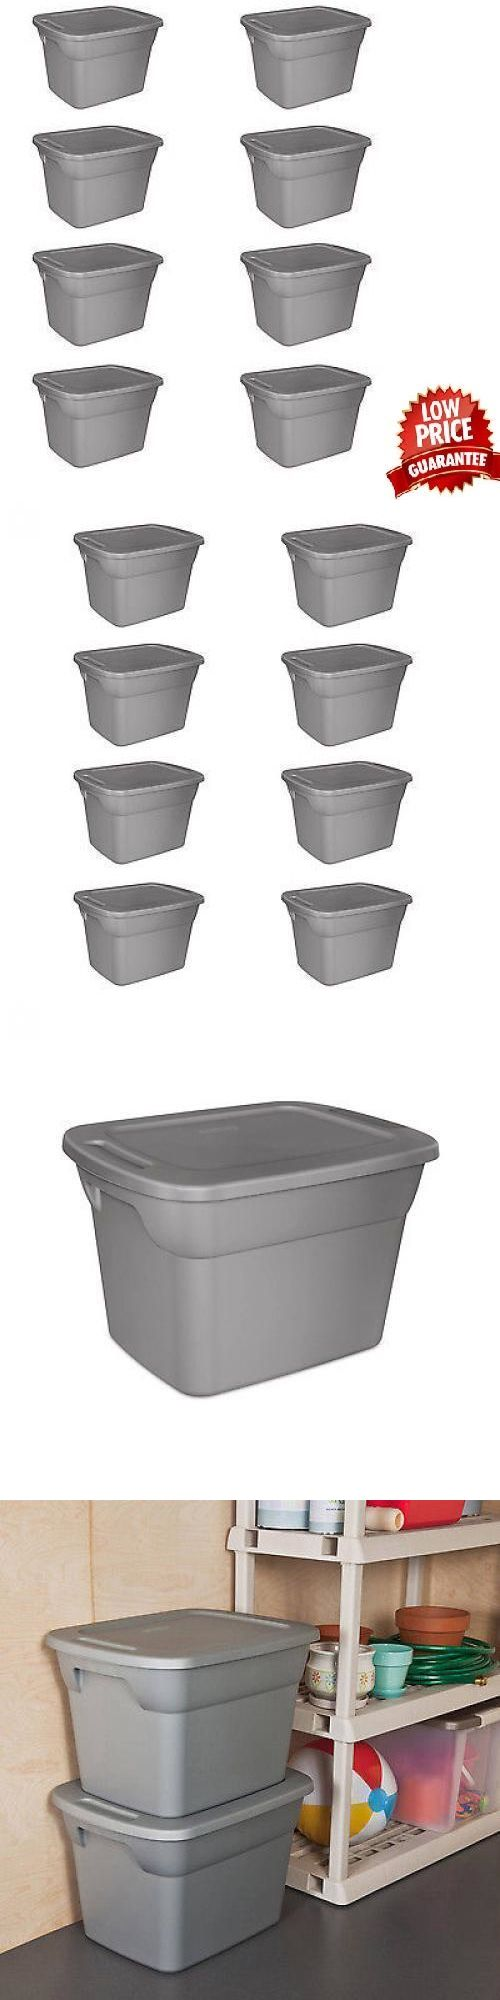 Storage Boxes 159897: 8 Plastic Storage Containers Box Sterilite 18-Gallon Stackable Bin Tote Lid Set -> BUY IT NOW ONLY: $47.45 on eBay!